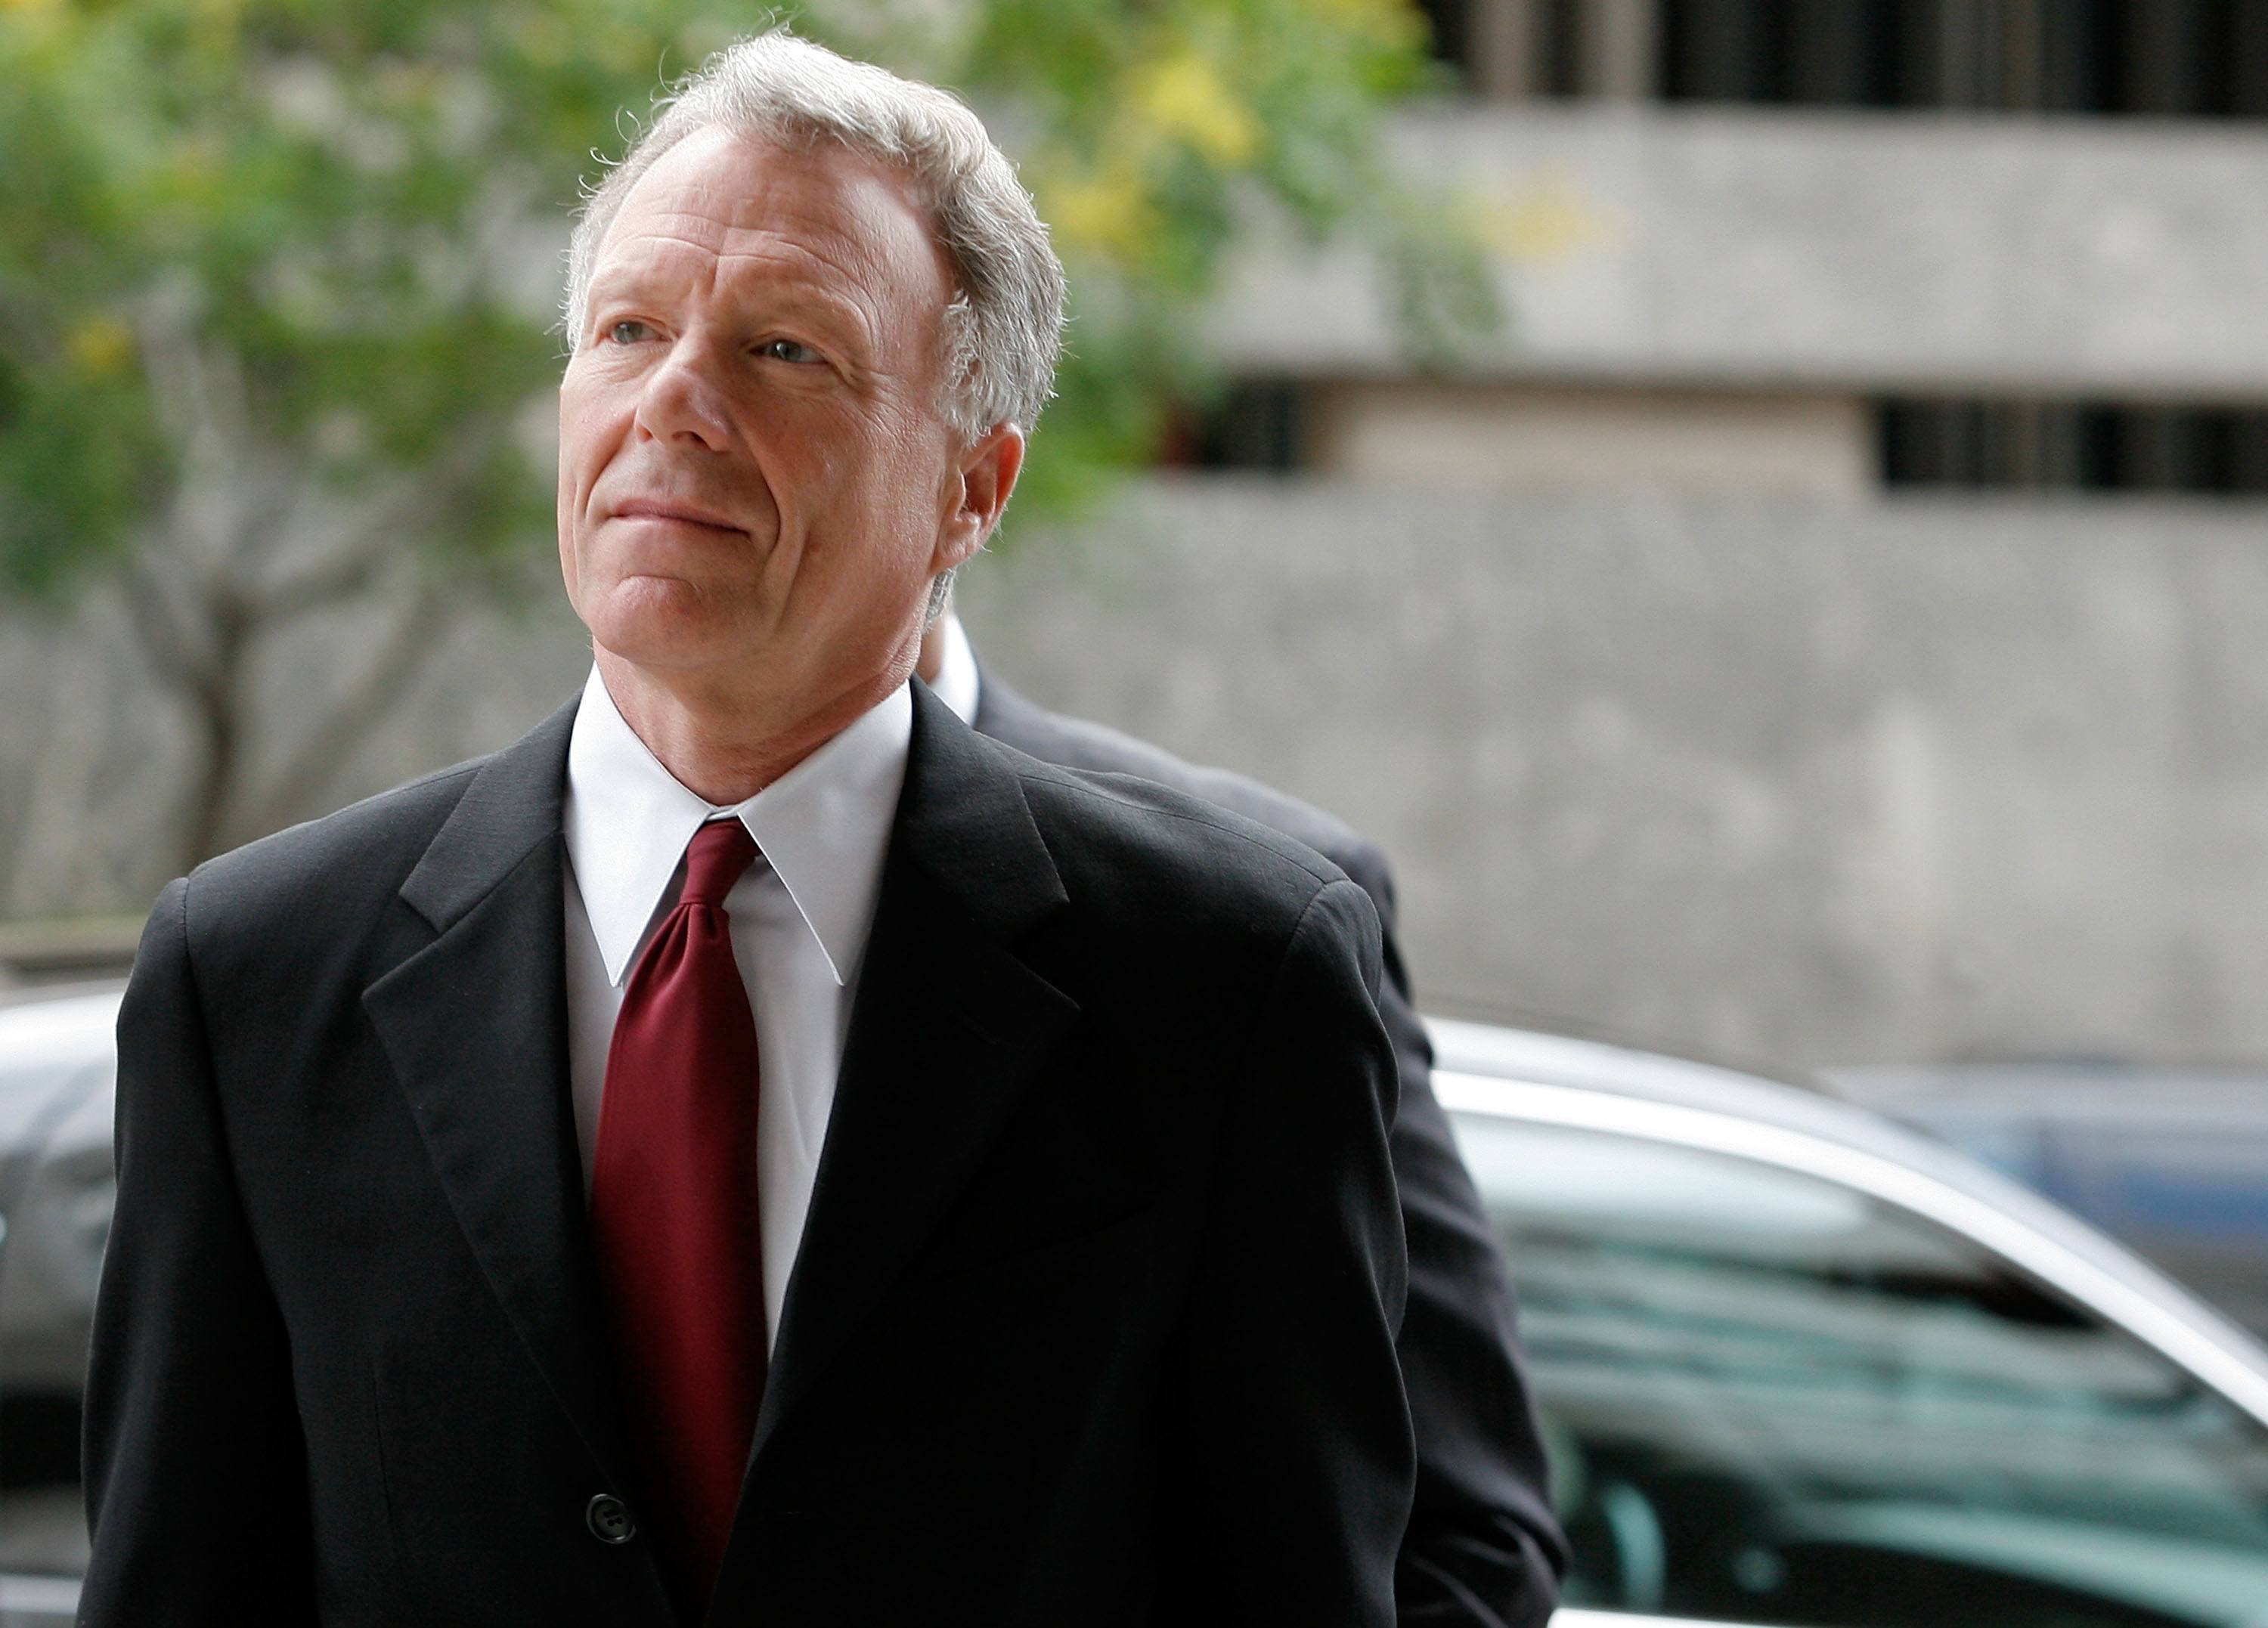 Lewis Scooter Libby at a hearing